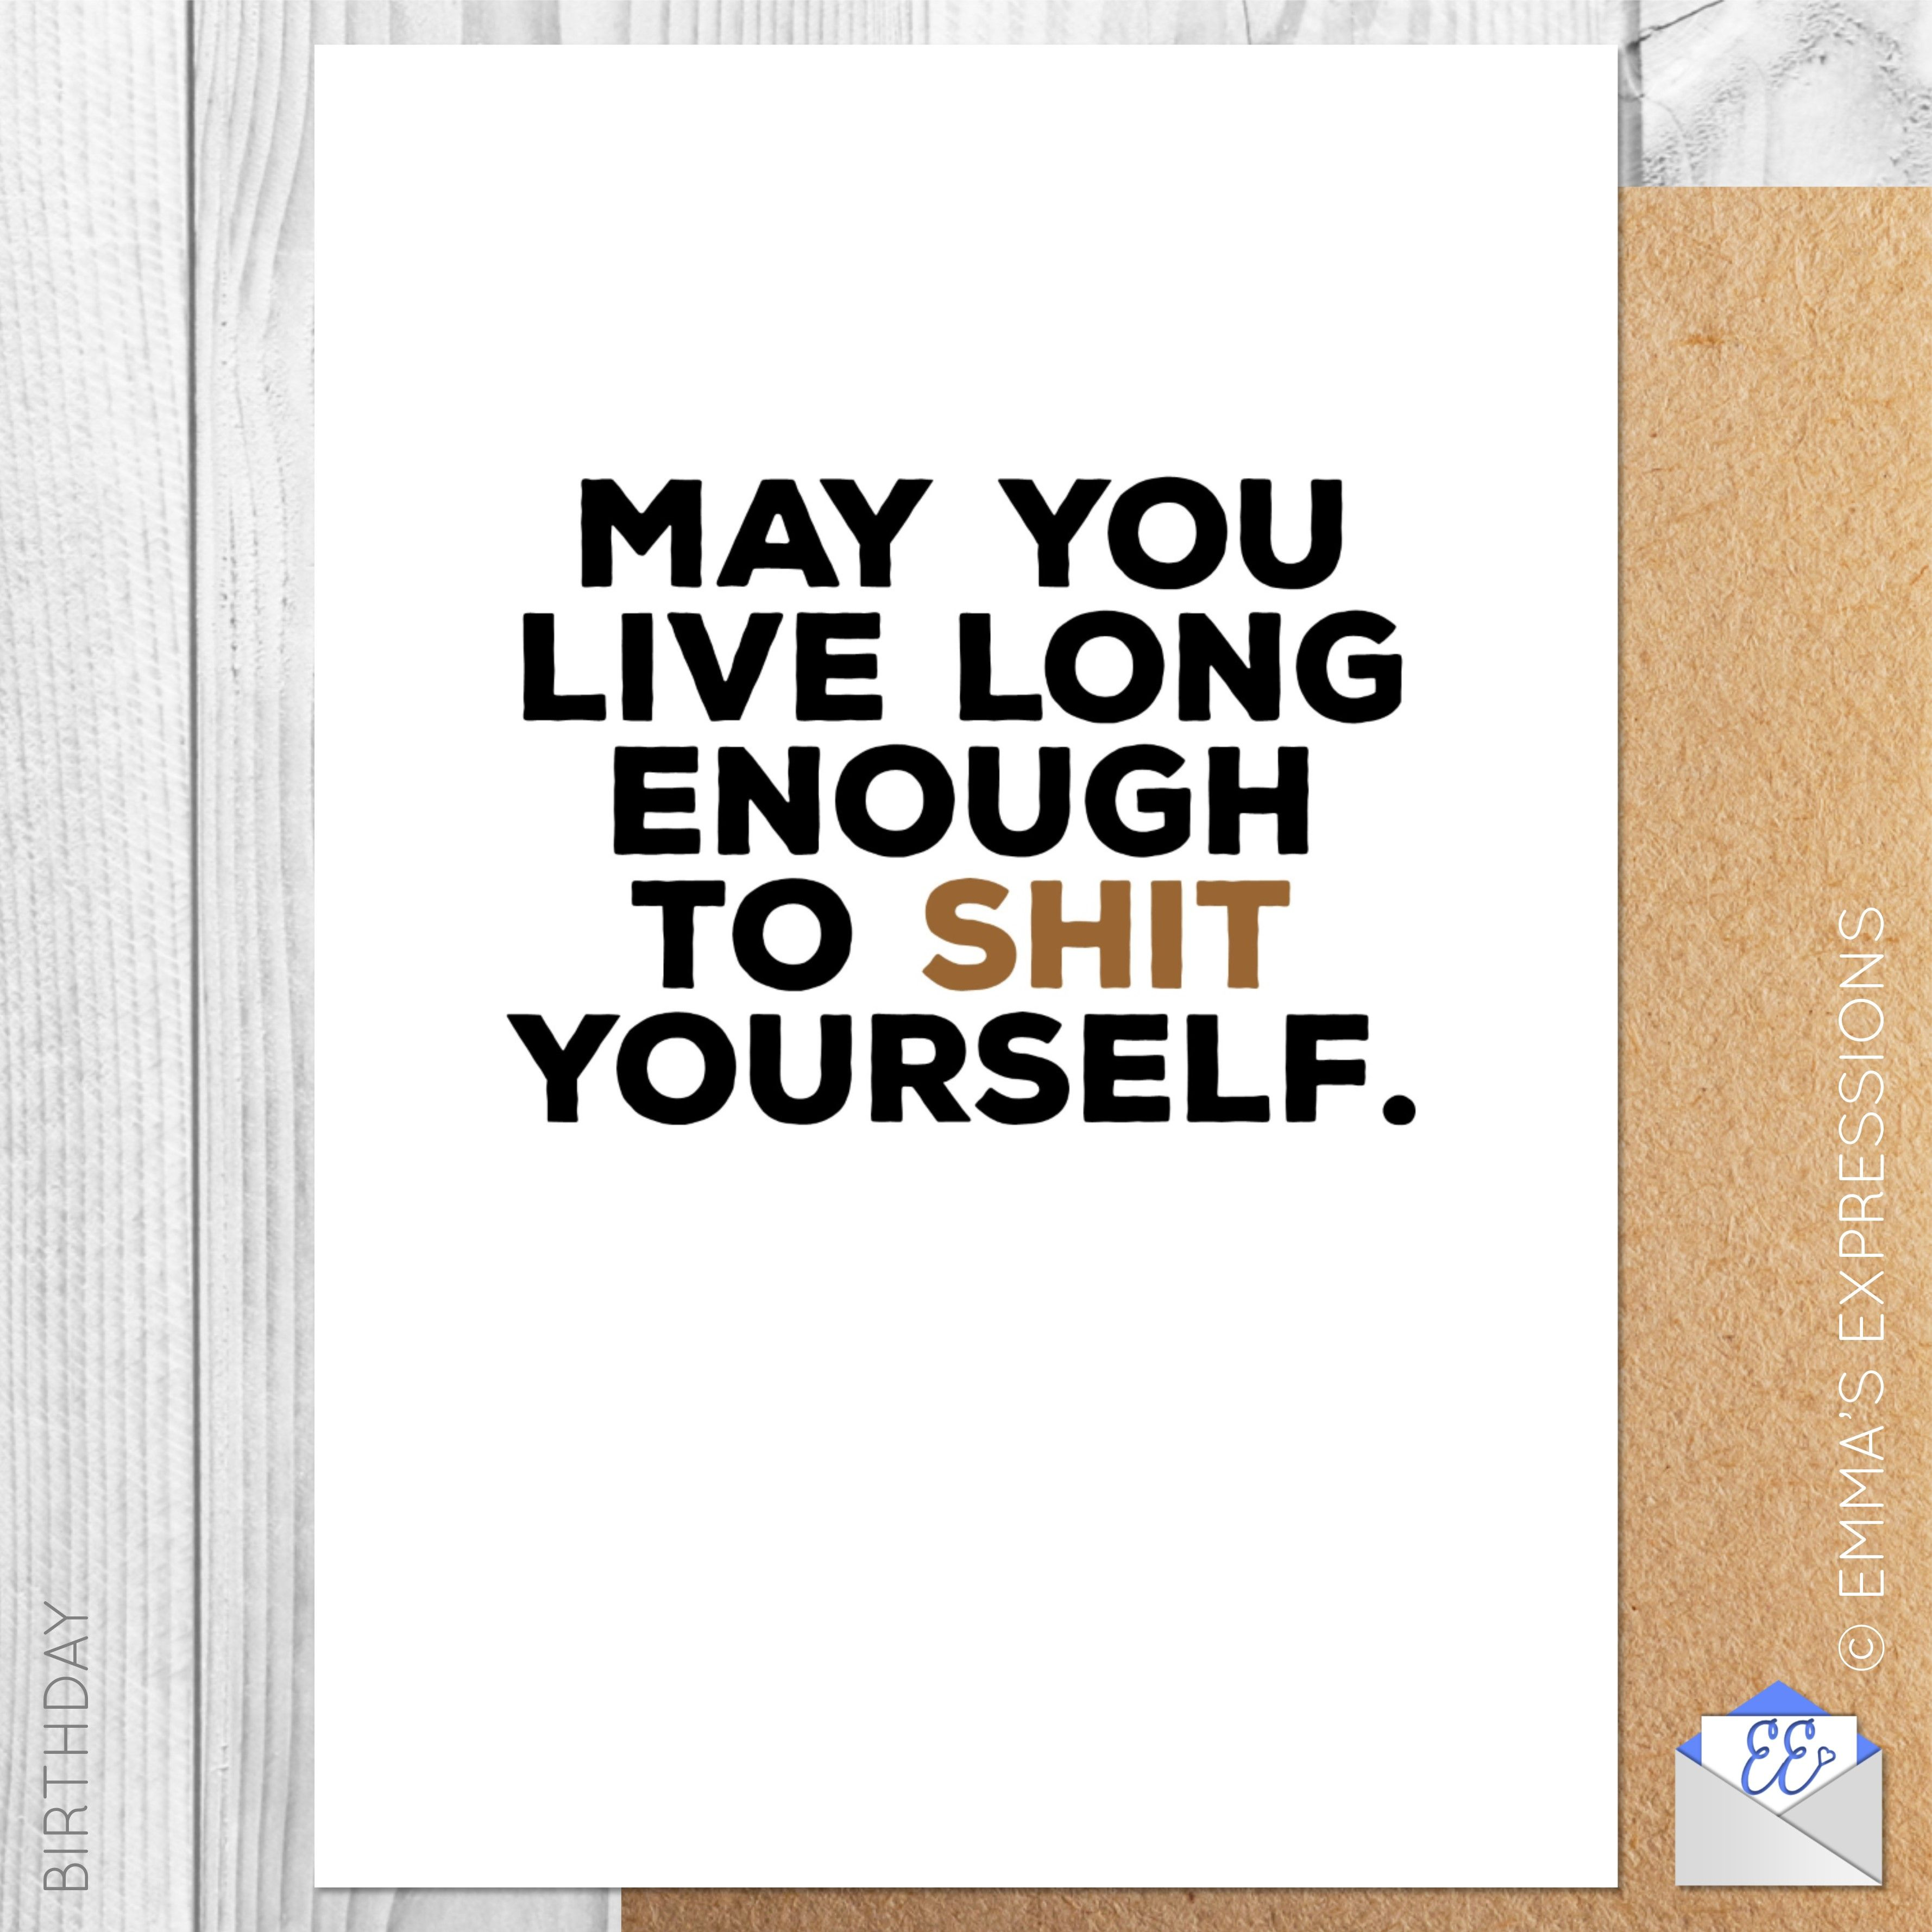 May you live long enough to shit yourself funny rude birthday may you live long enough to shit yourself funny rude birthday greeting card m4hsunfo